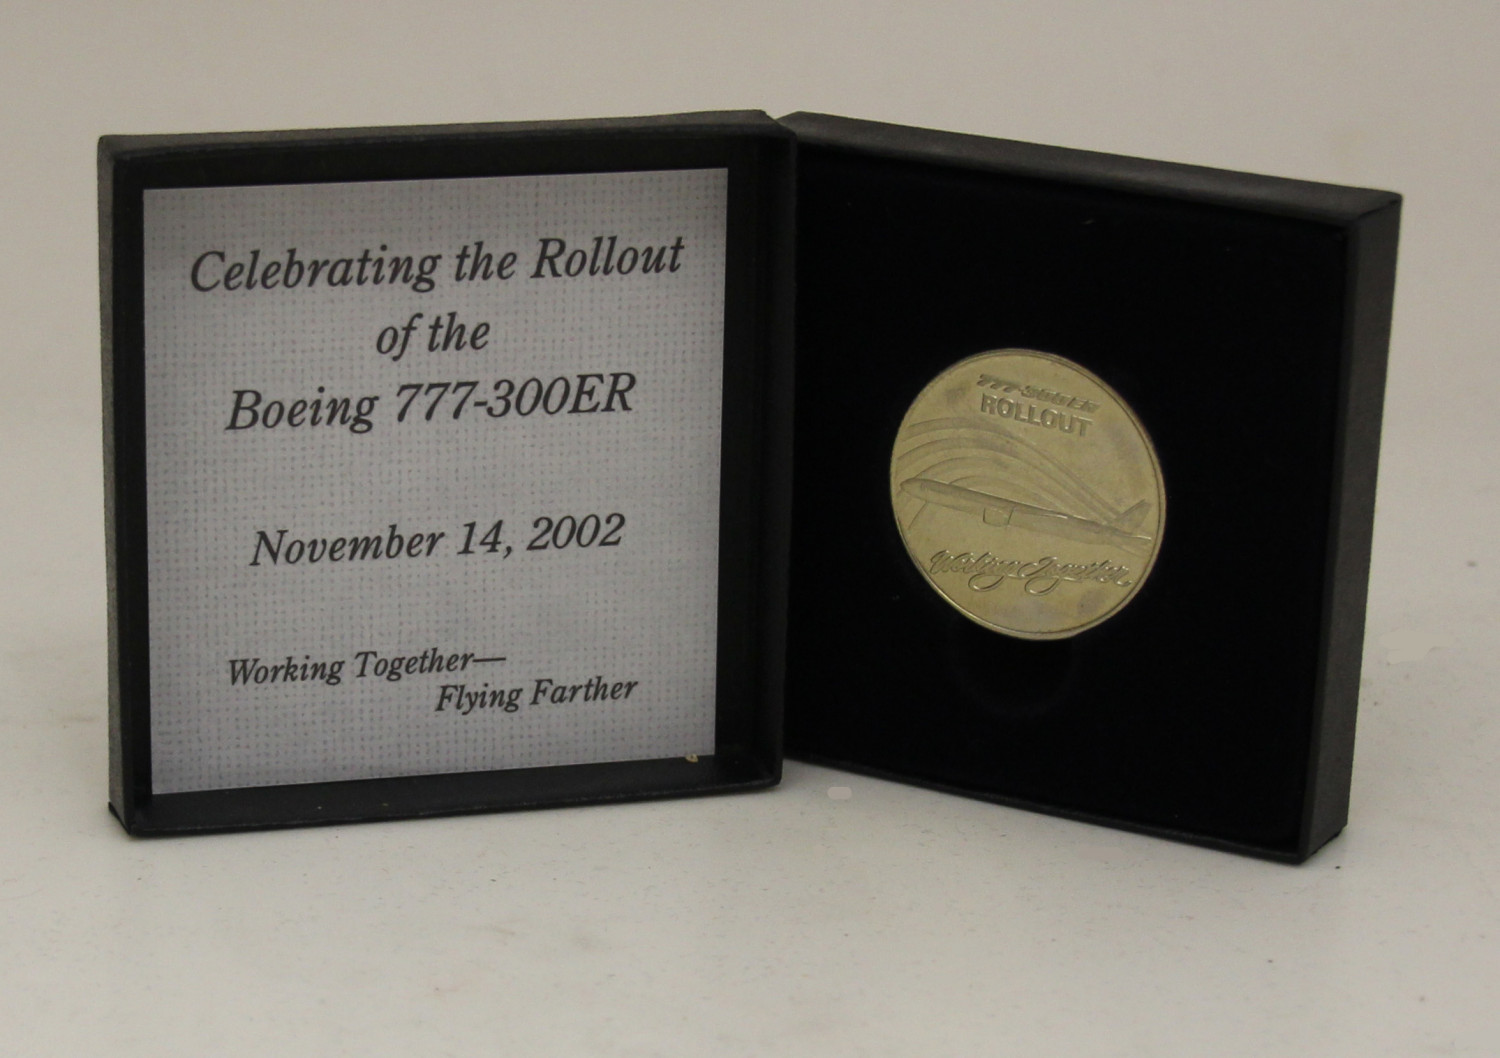 Medallion Celebrating the Rollout of the Boeing 777-300ER